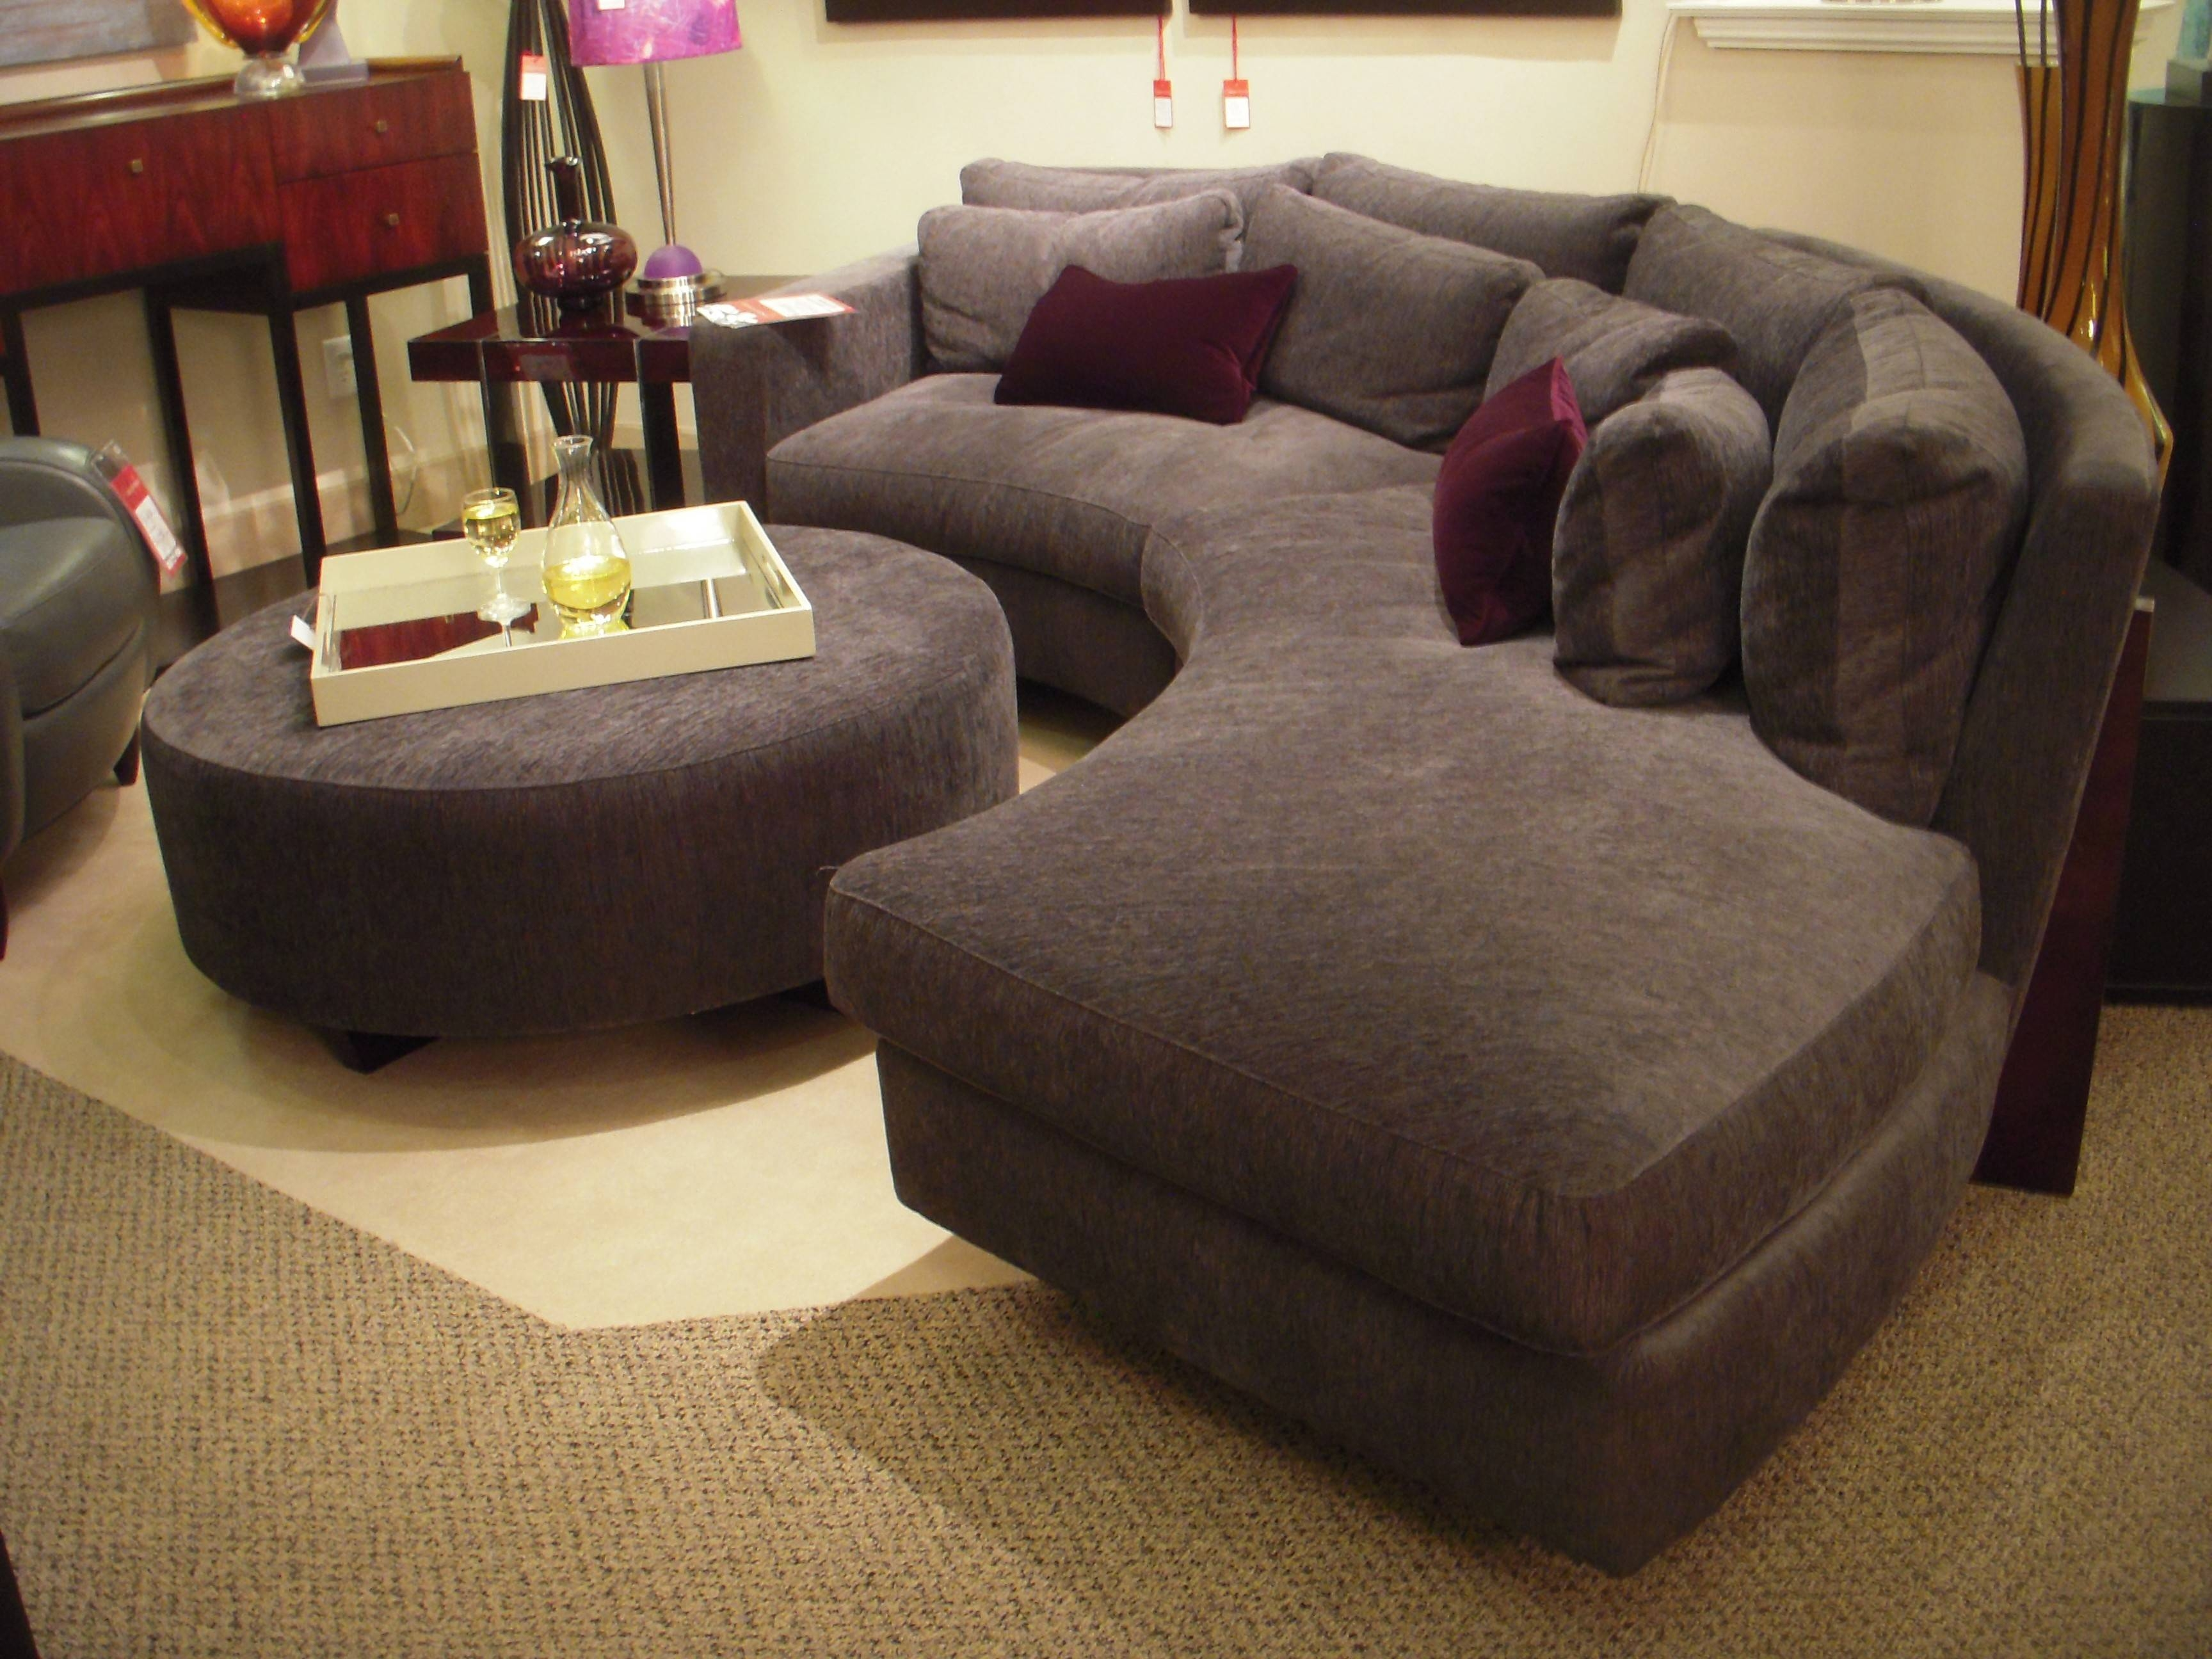 Amazing Velour Sectional Sofa 48 About Remodel 6 Piece Leather with 6 Piece Leather Sectional Sofa (Image 5 of 30)